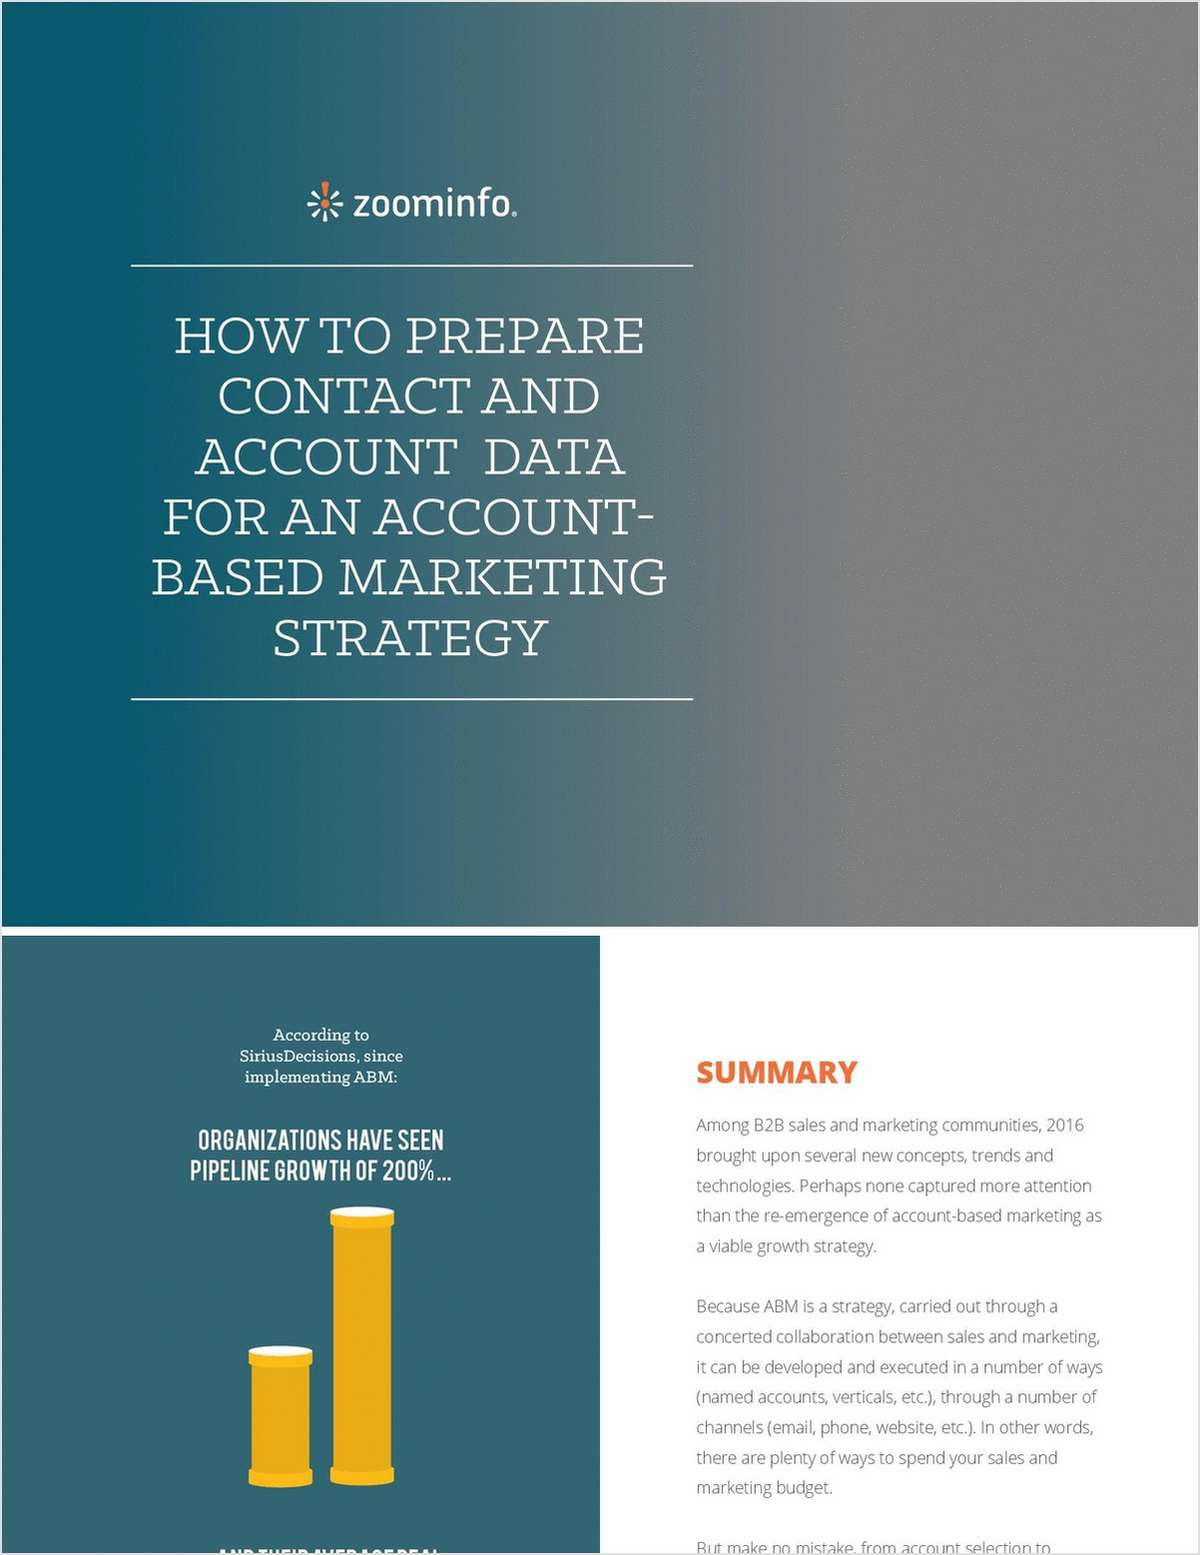 How to Prepare Contact & Account for an Account-Based Marketing Strategy